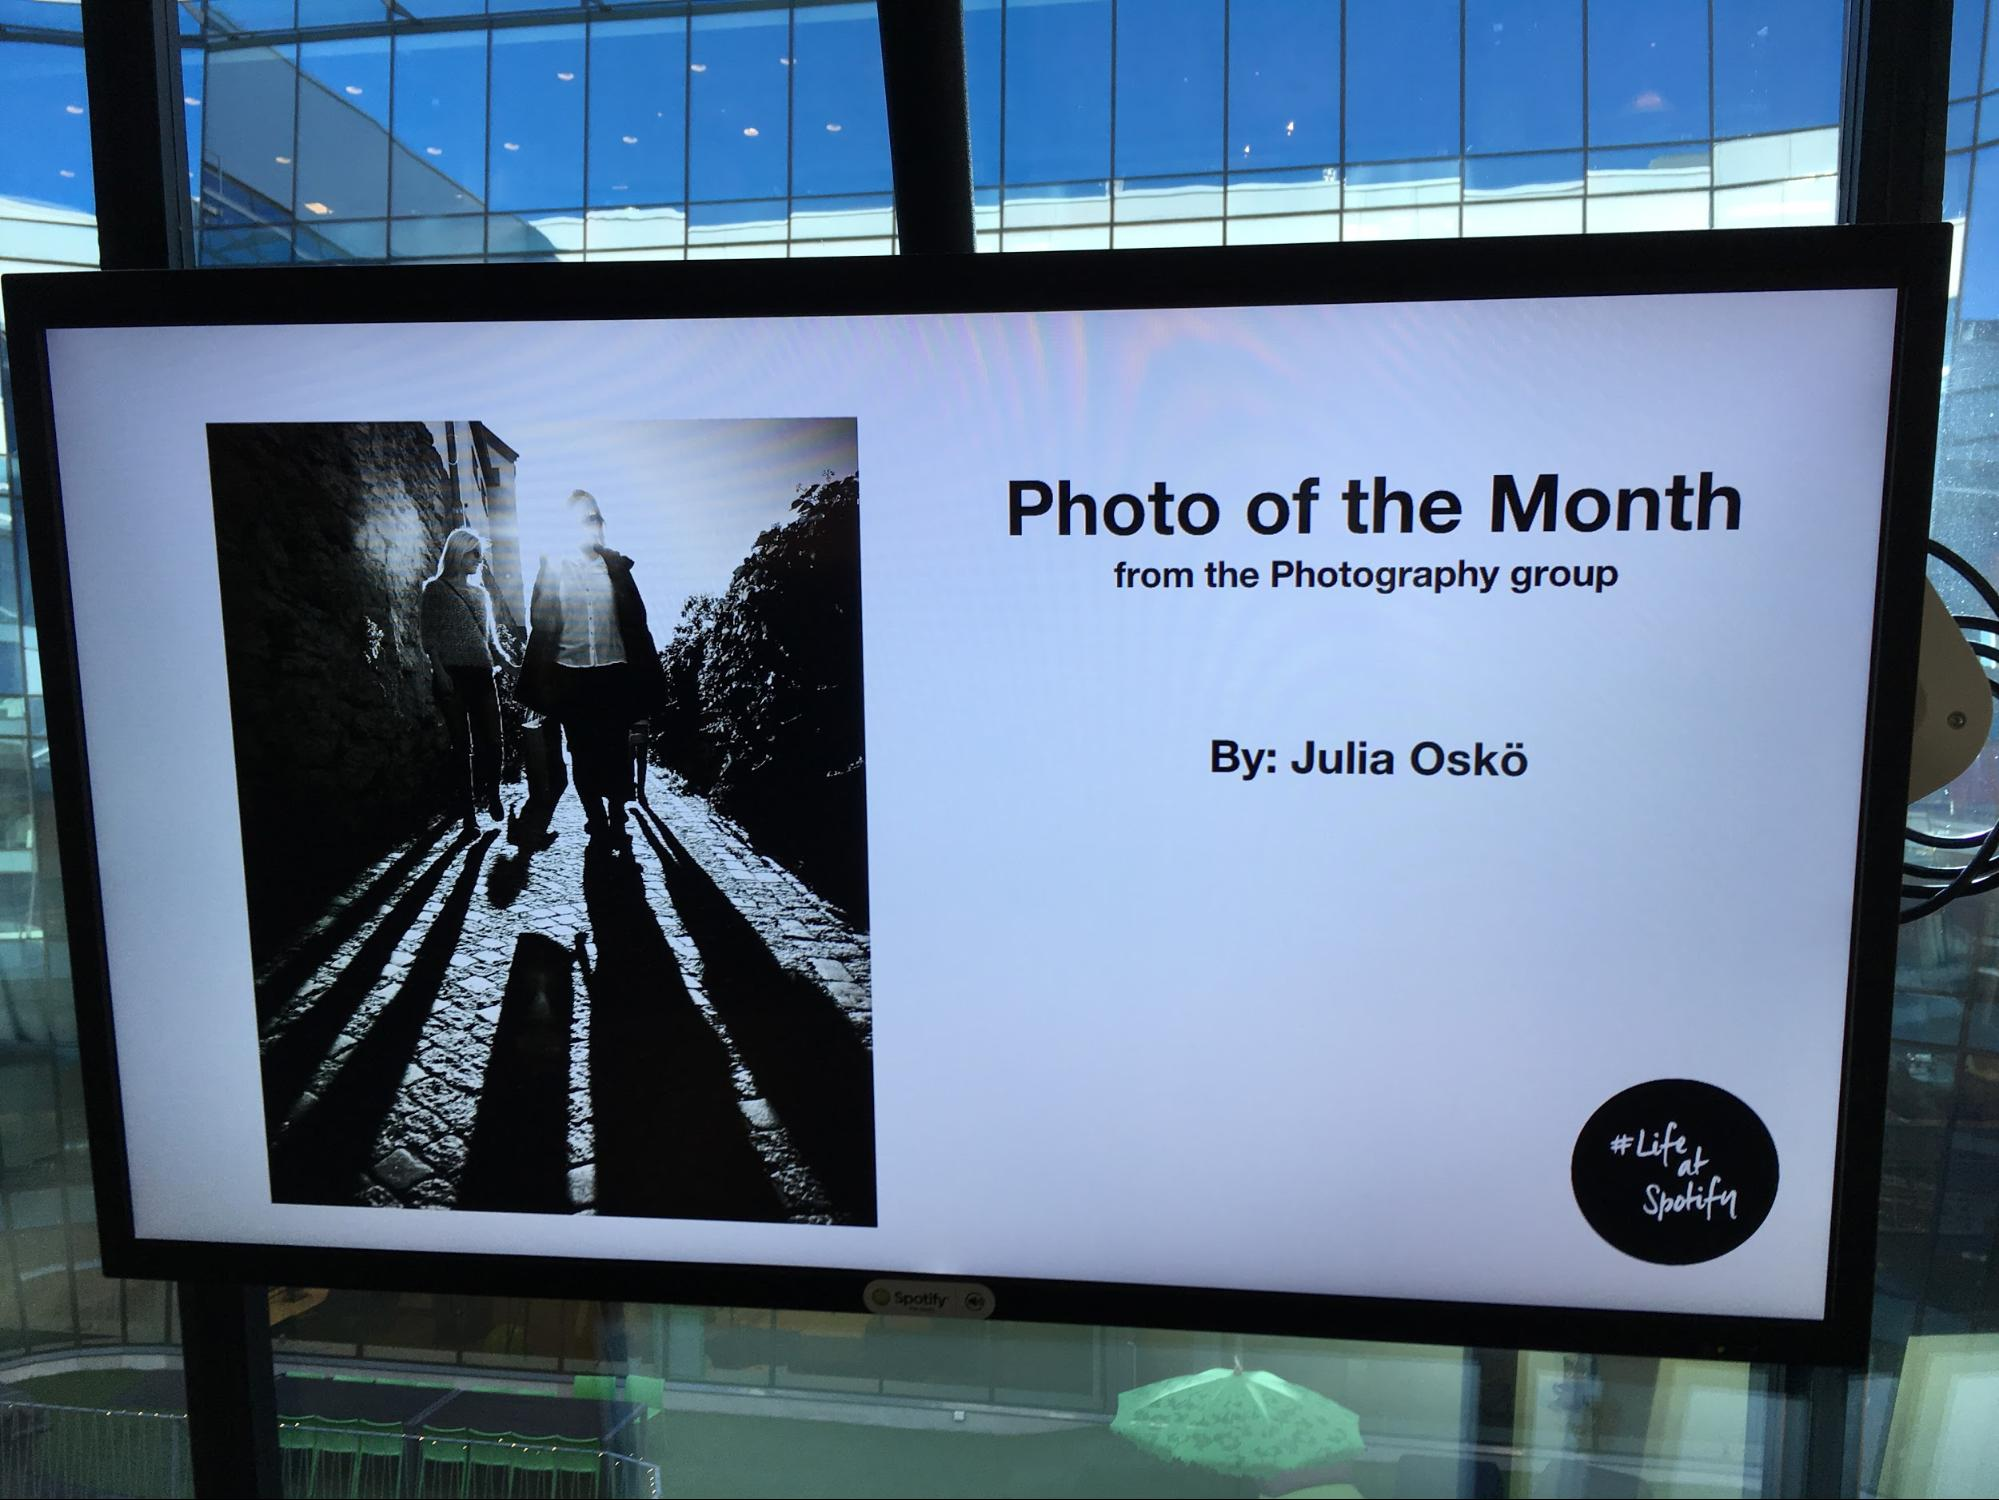 Corporate Digital Signage | Office Communication | Photo of the Month